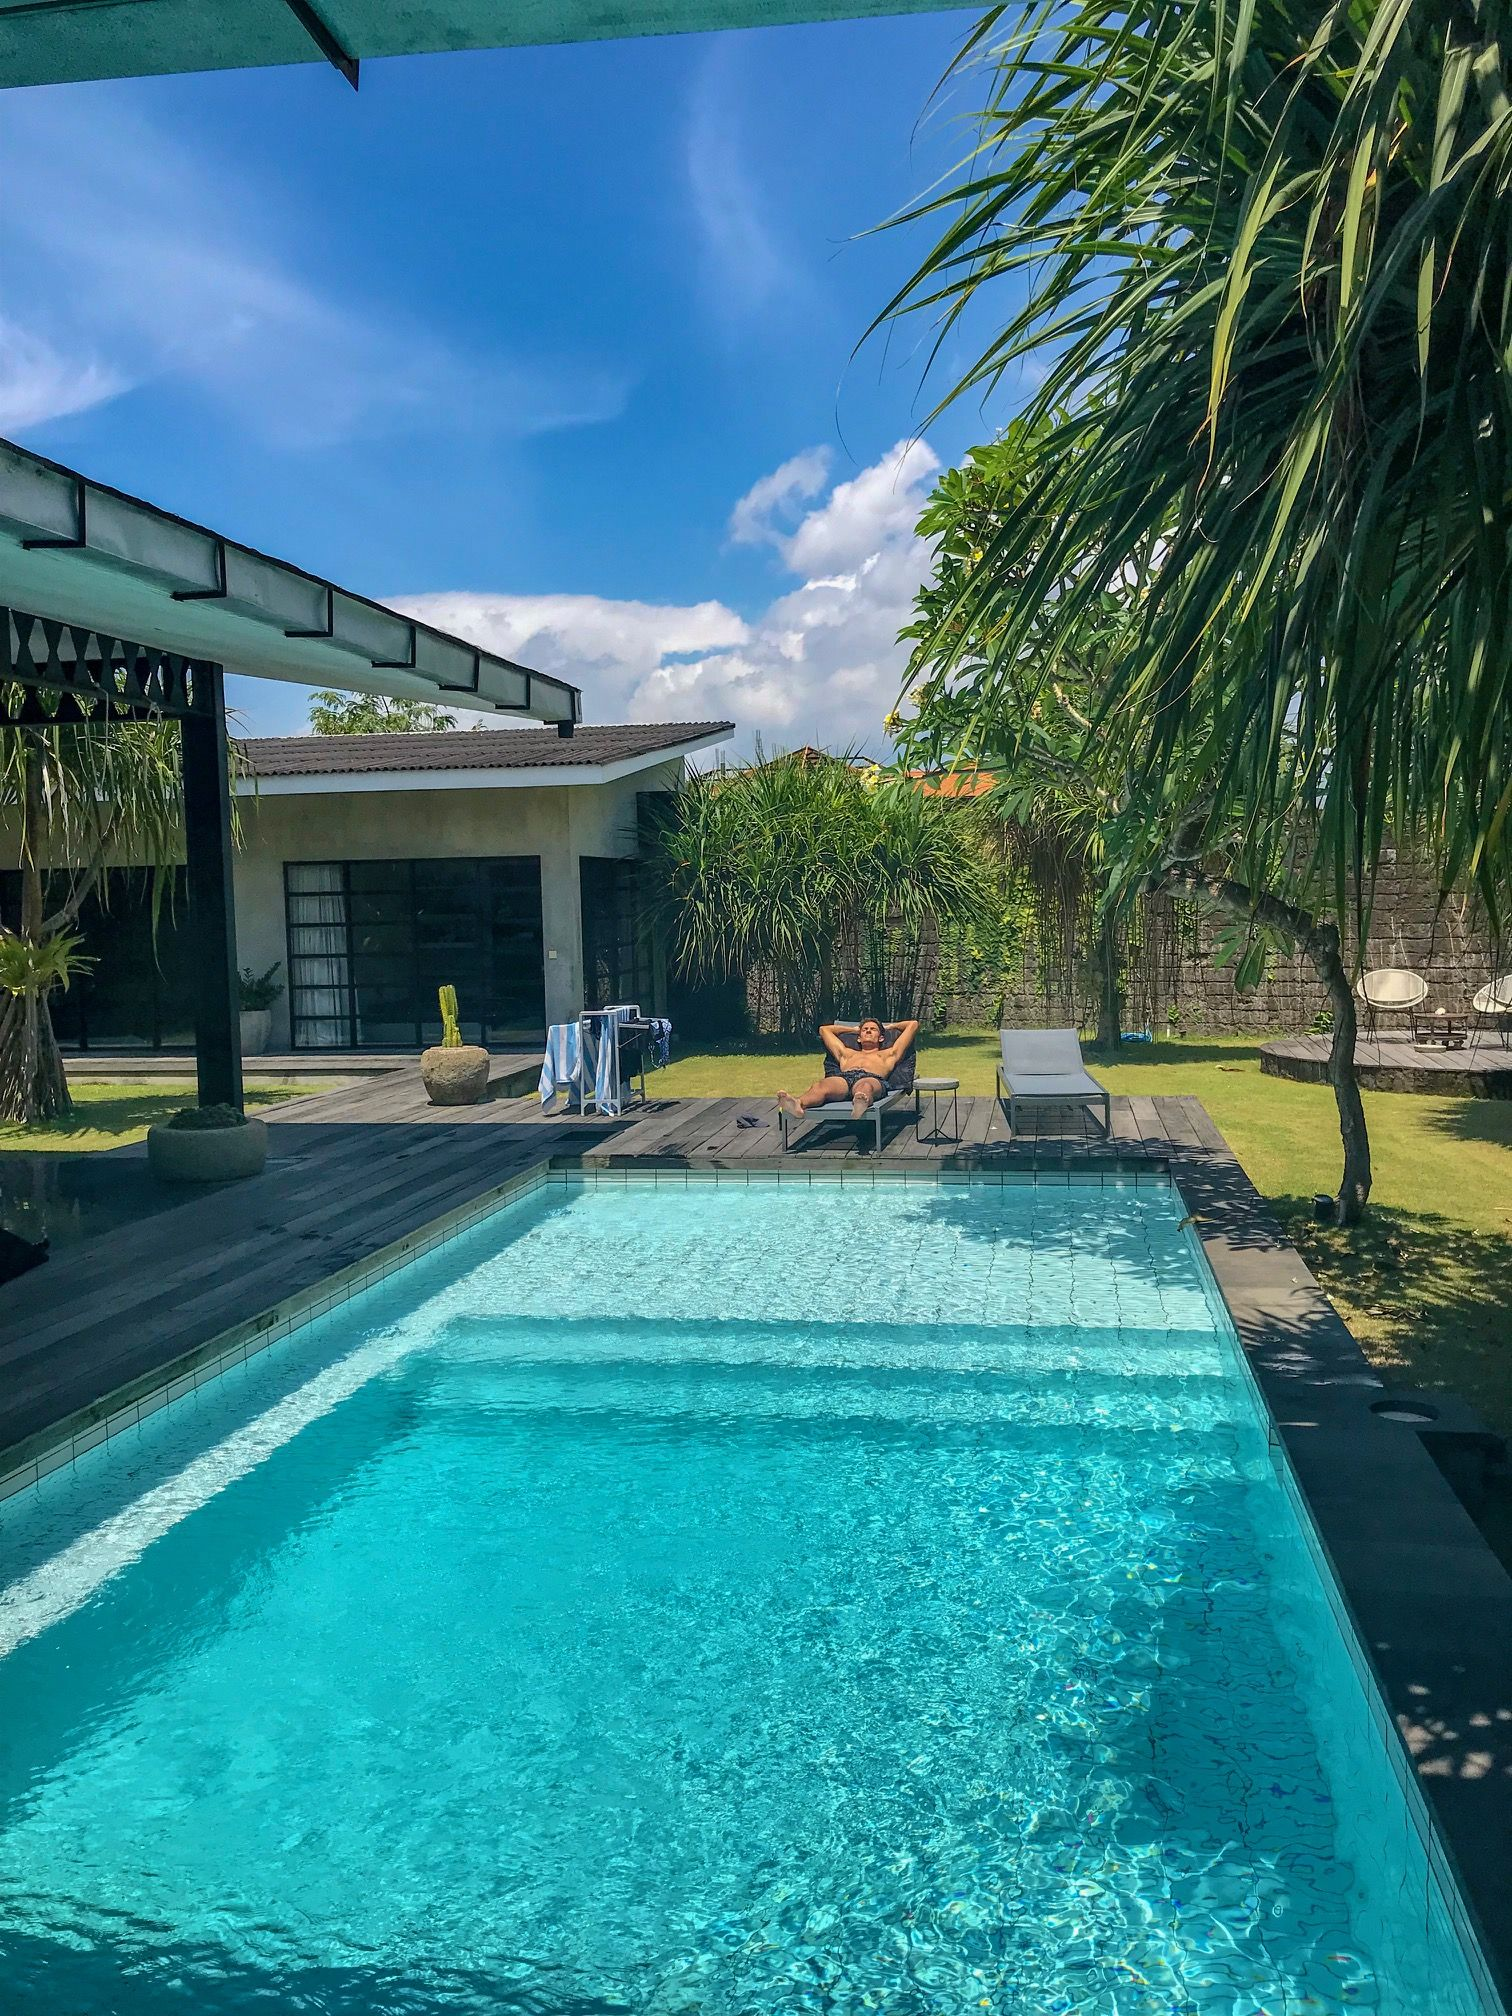 private villa with great pool in canggu bali best accommodation rh pinterest com